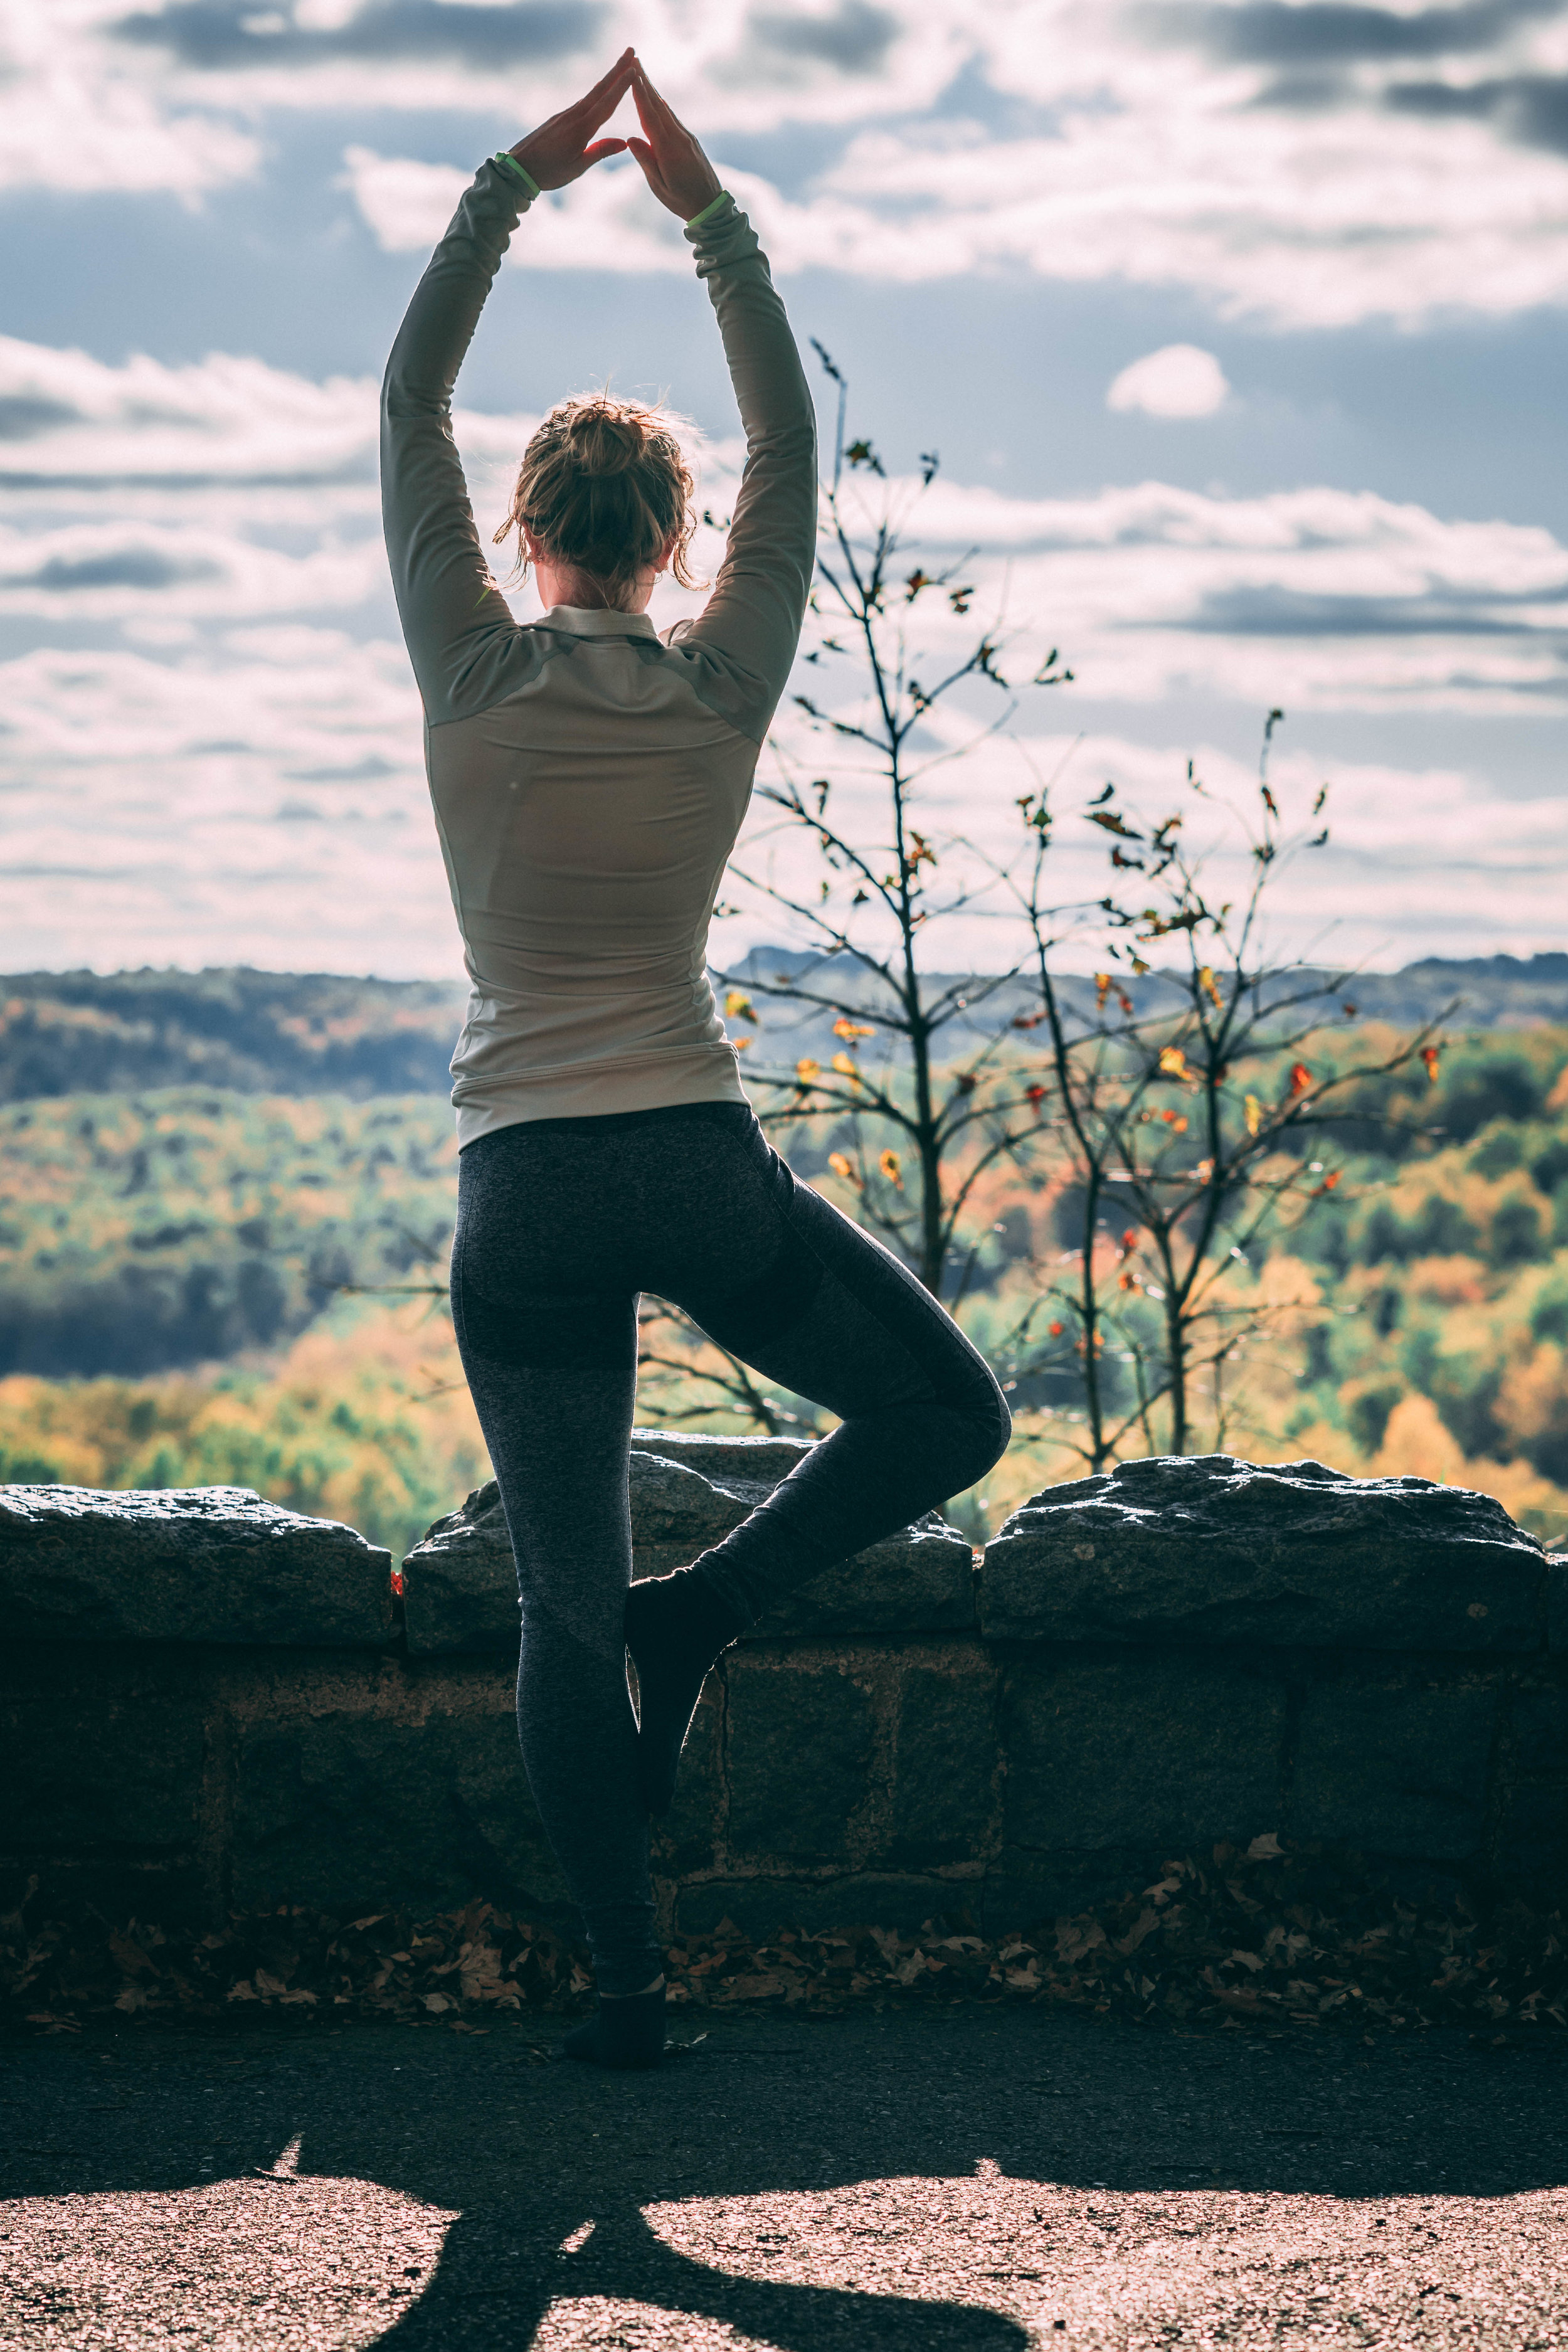 Walking Yoga - Breath slowly and raise your arms.